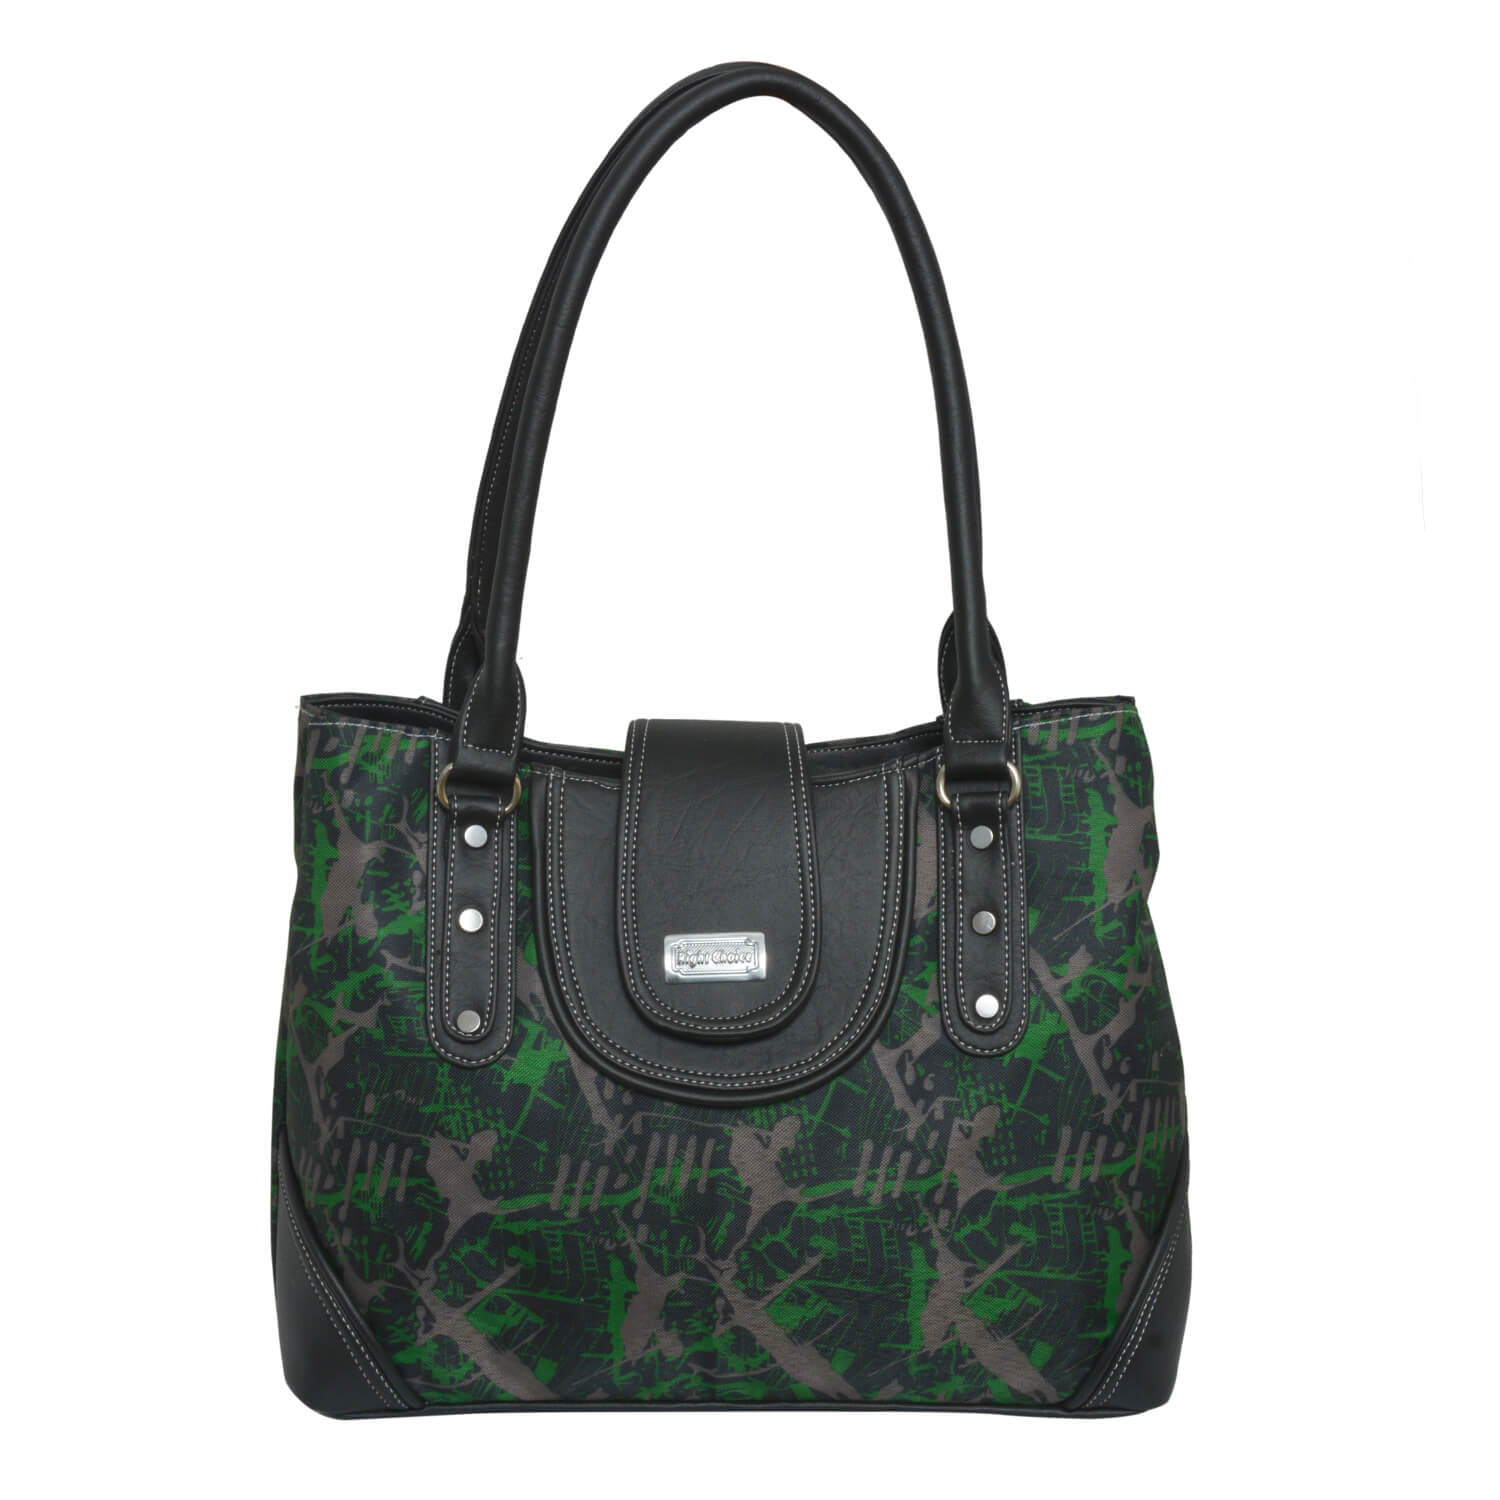 Right Choice RCH312 women's handbags in a modern type